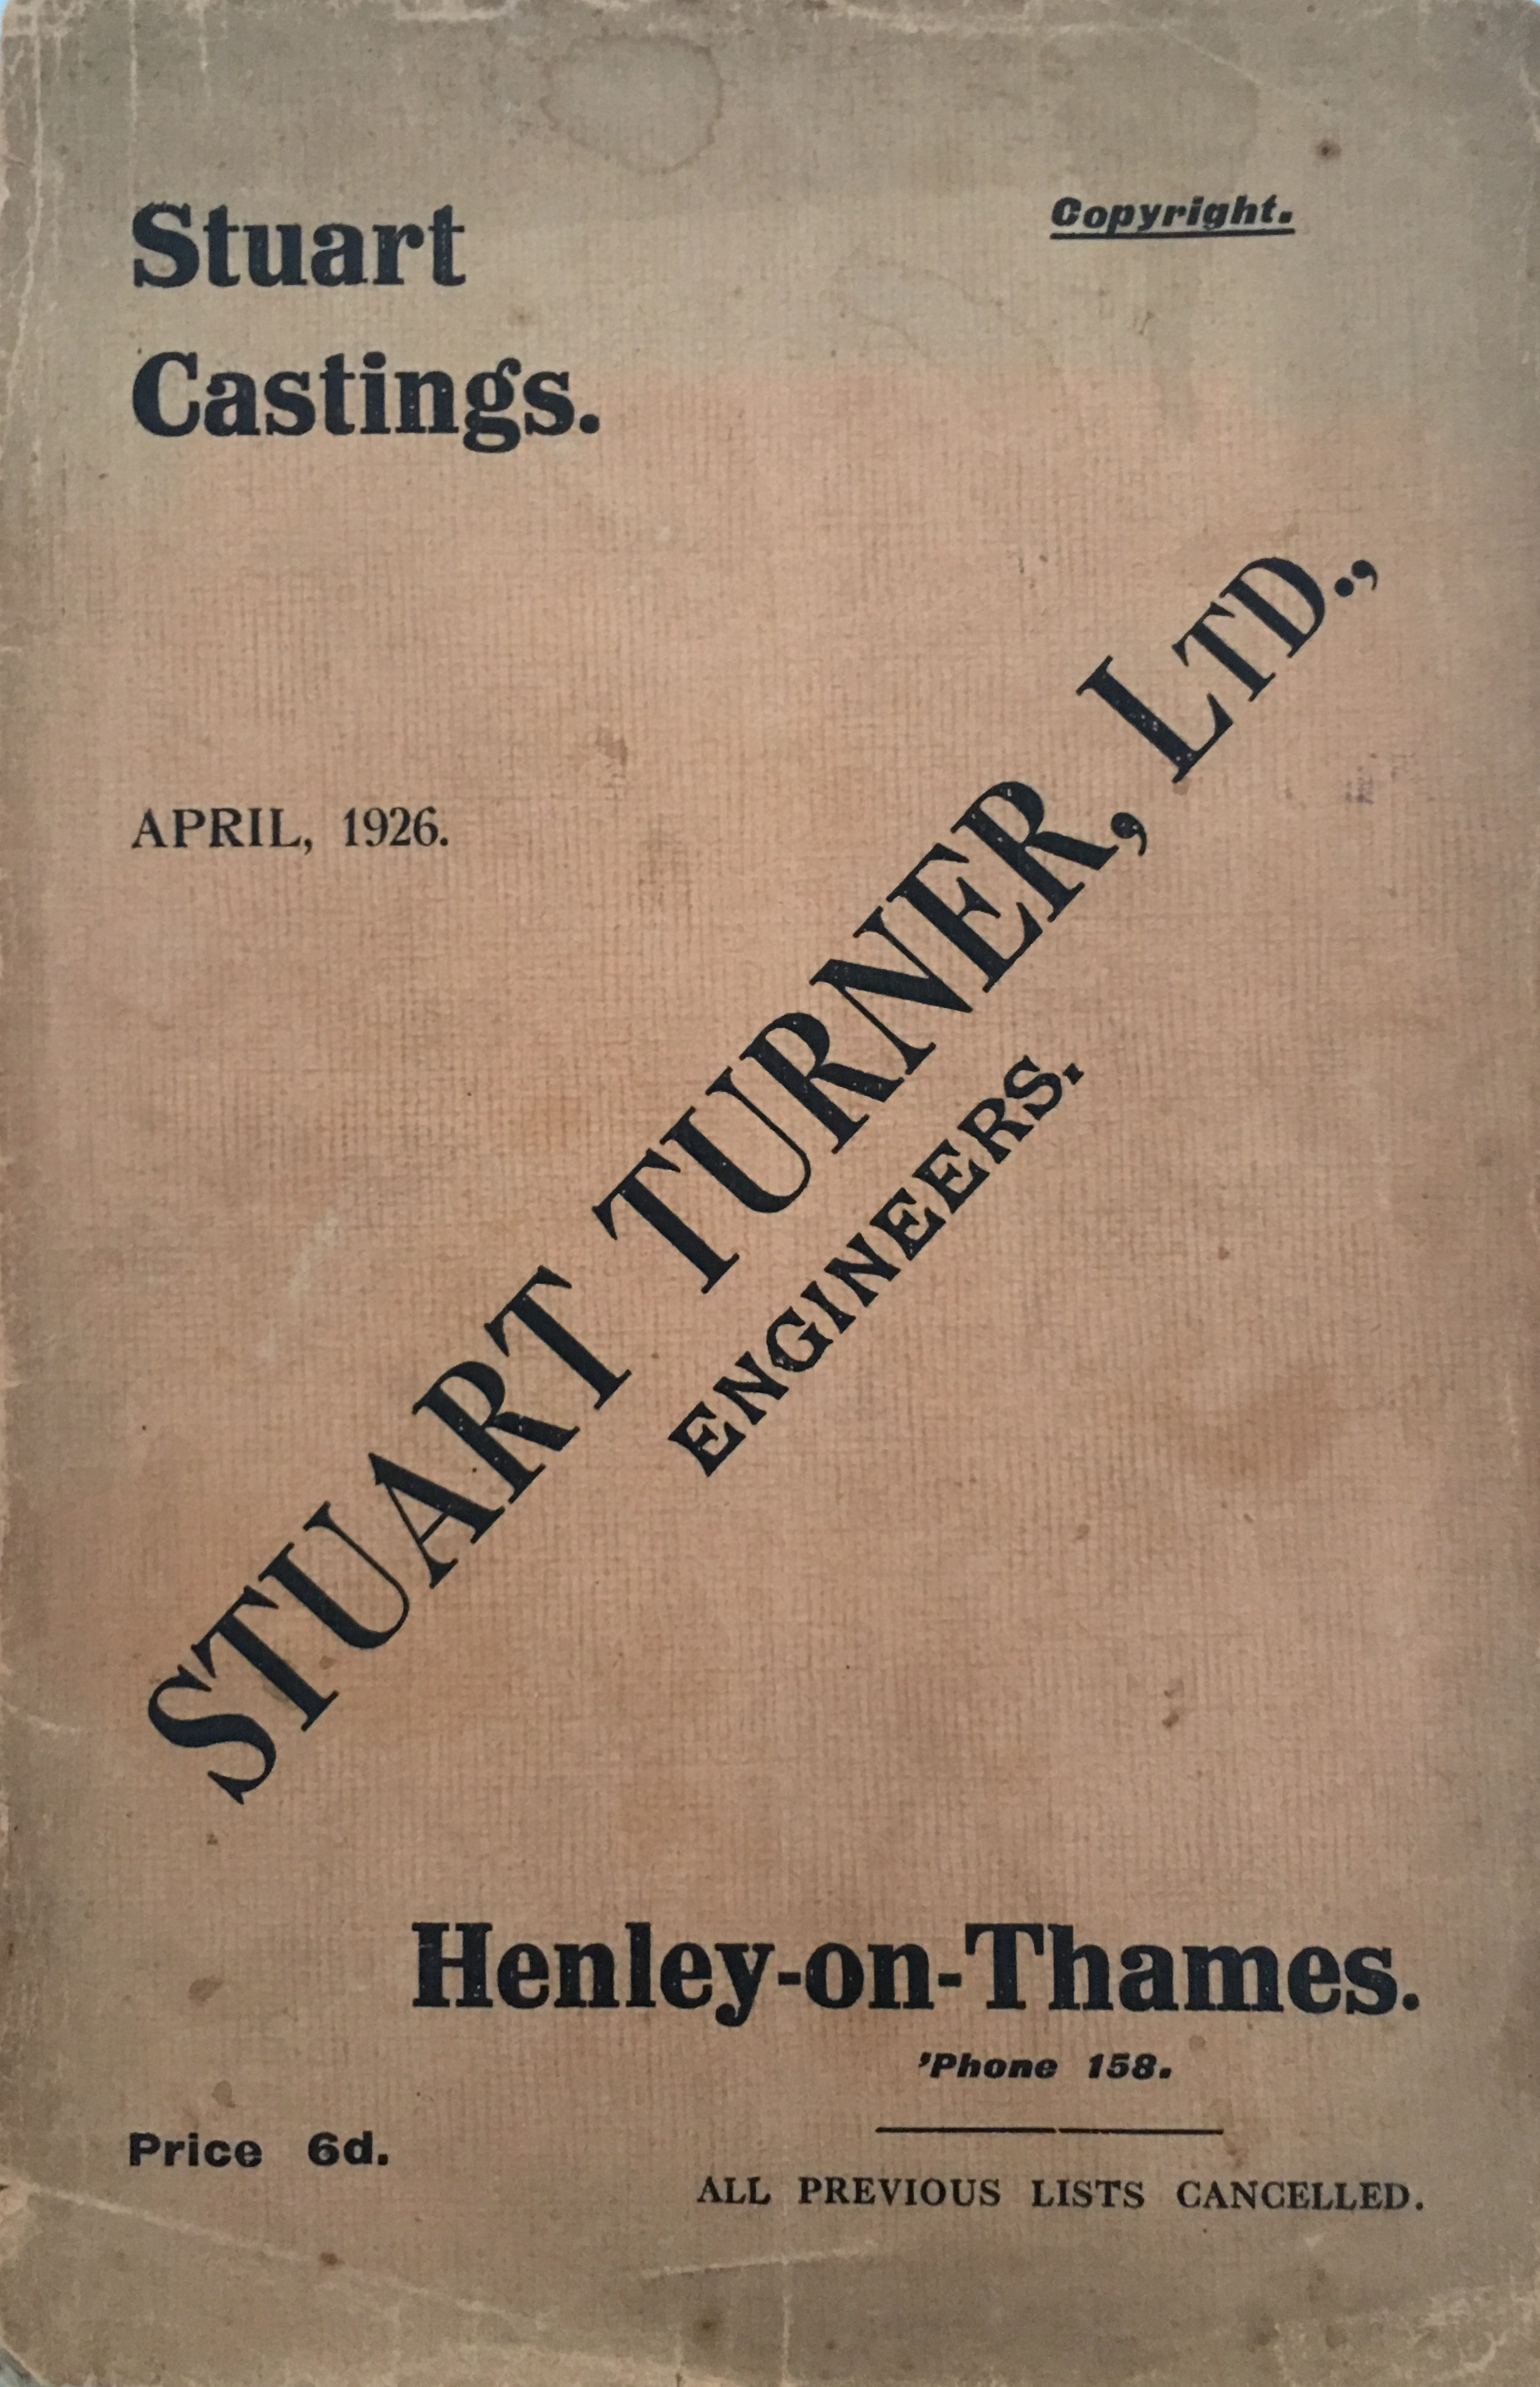 Early Stuart Turner Catalogue